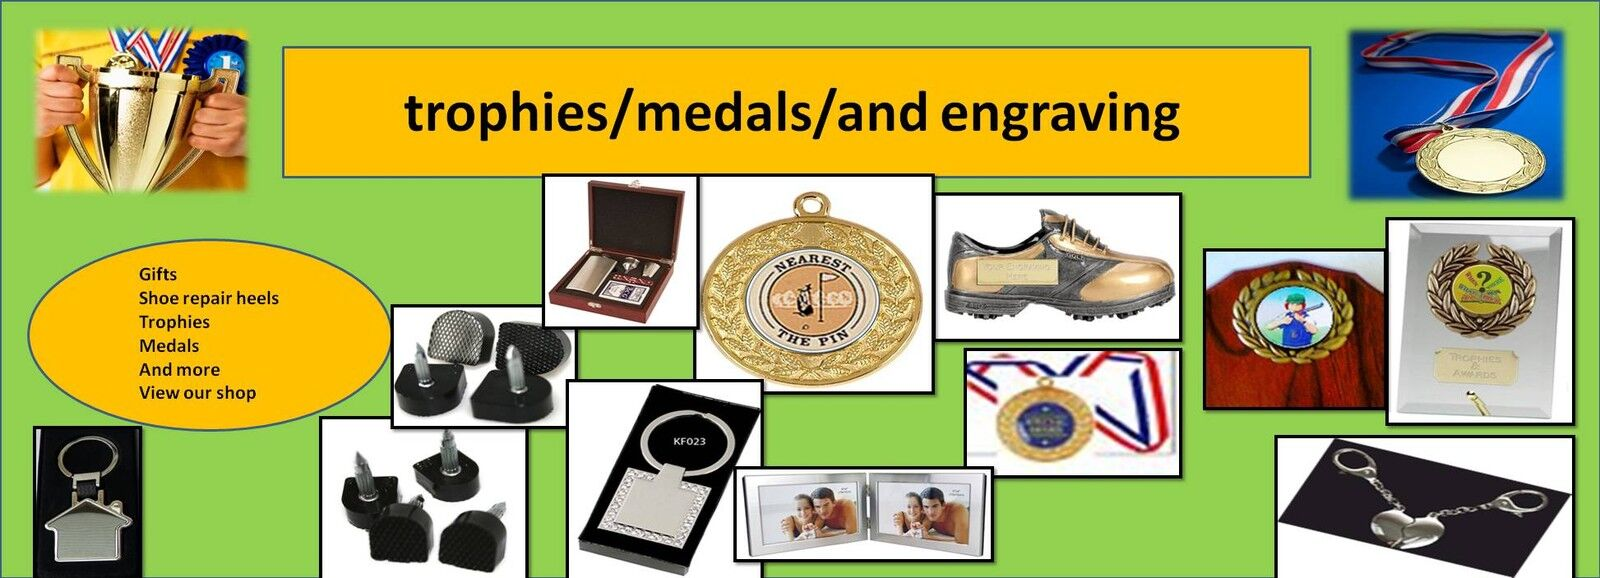 trophies/medals/and engraving